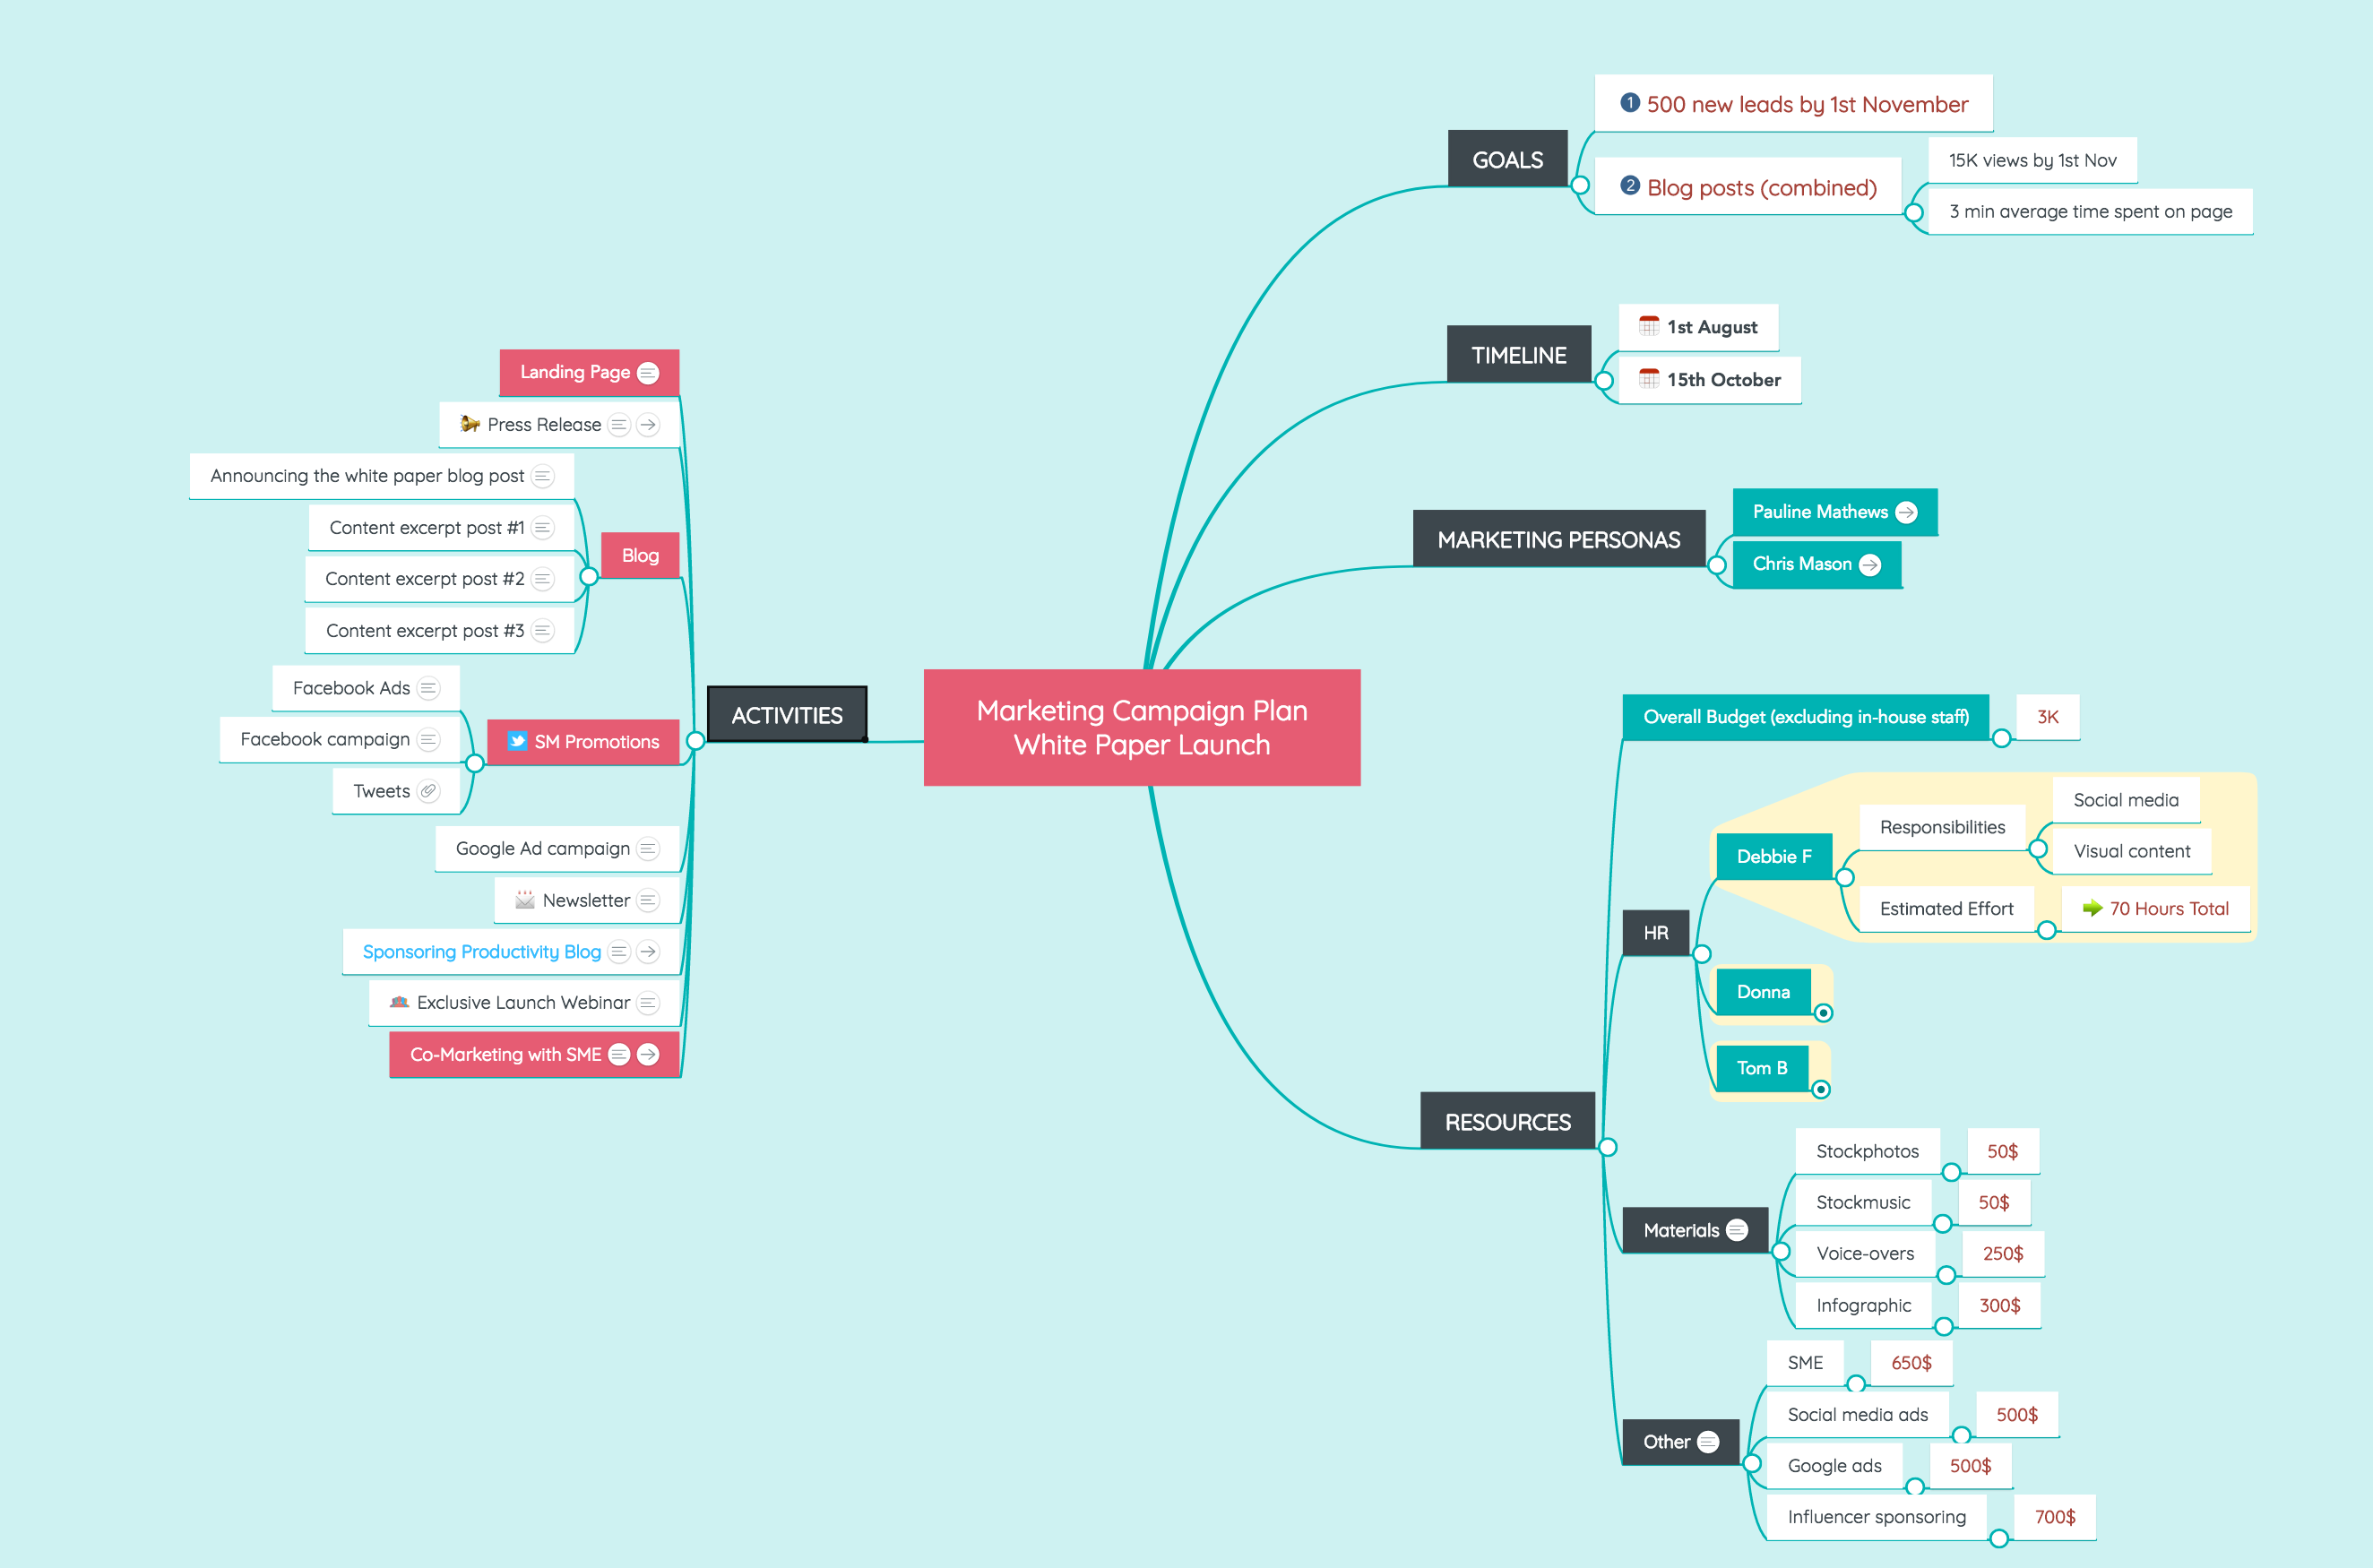 Marketing Campaign Plan Mind Map